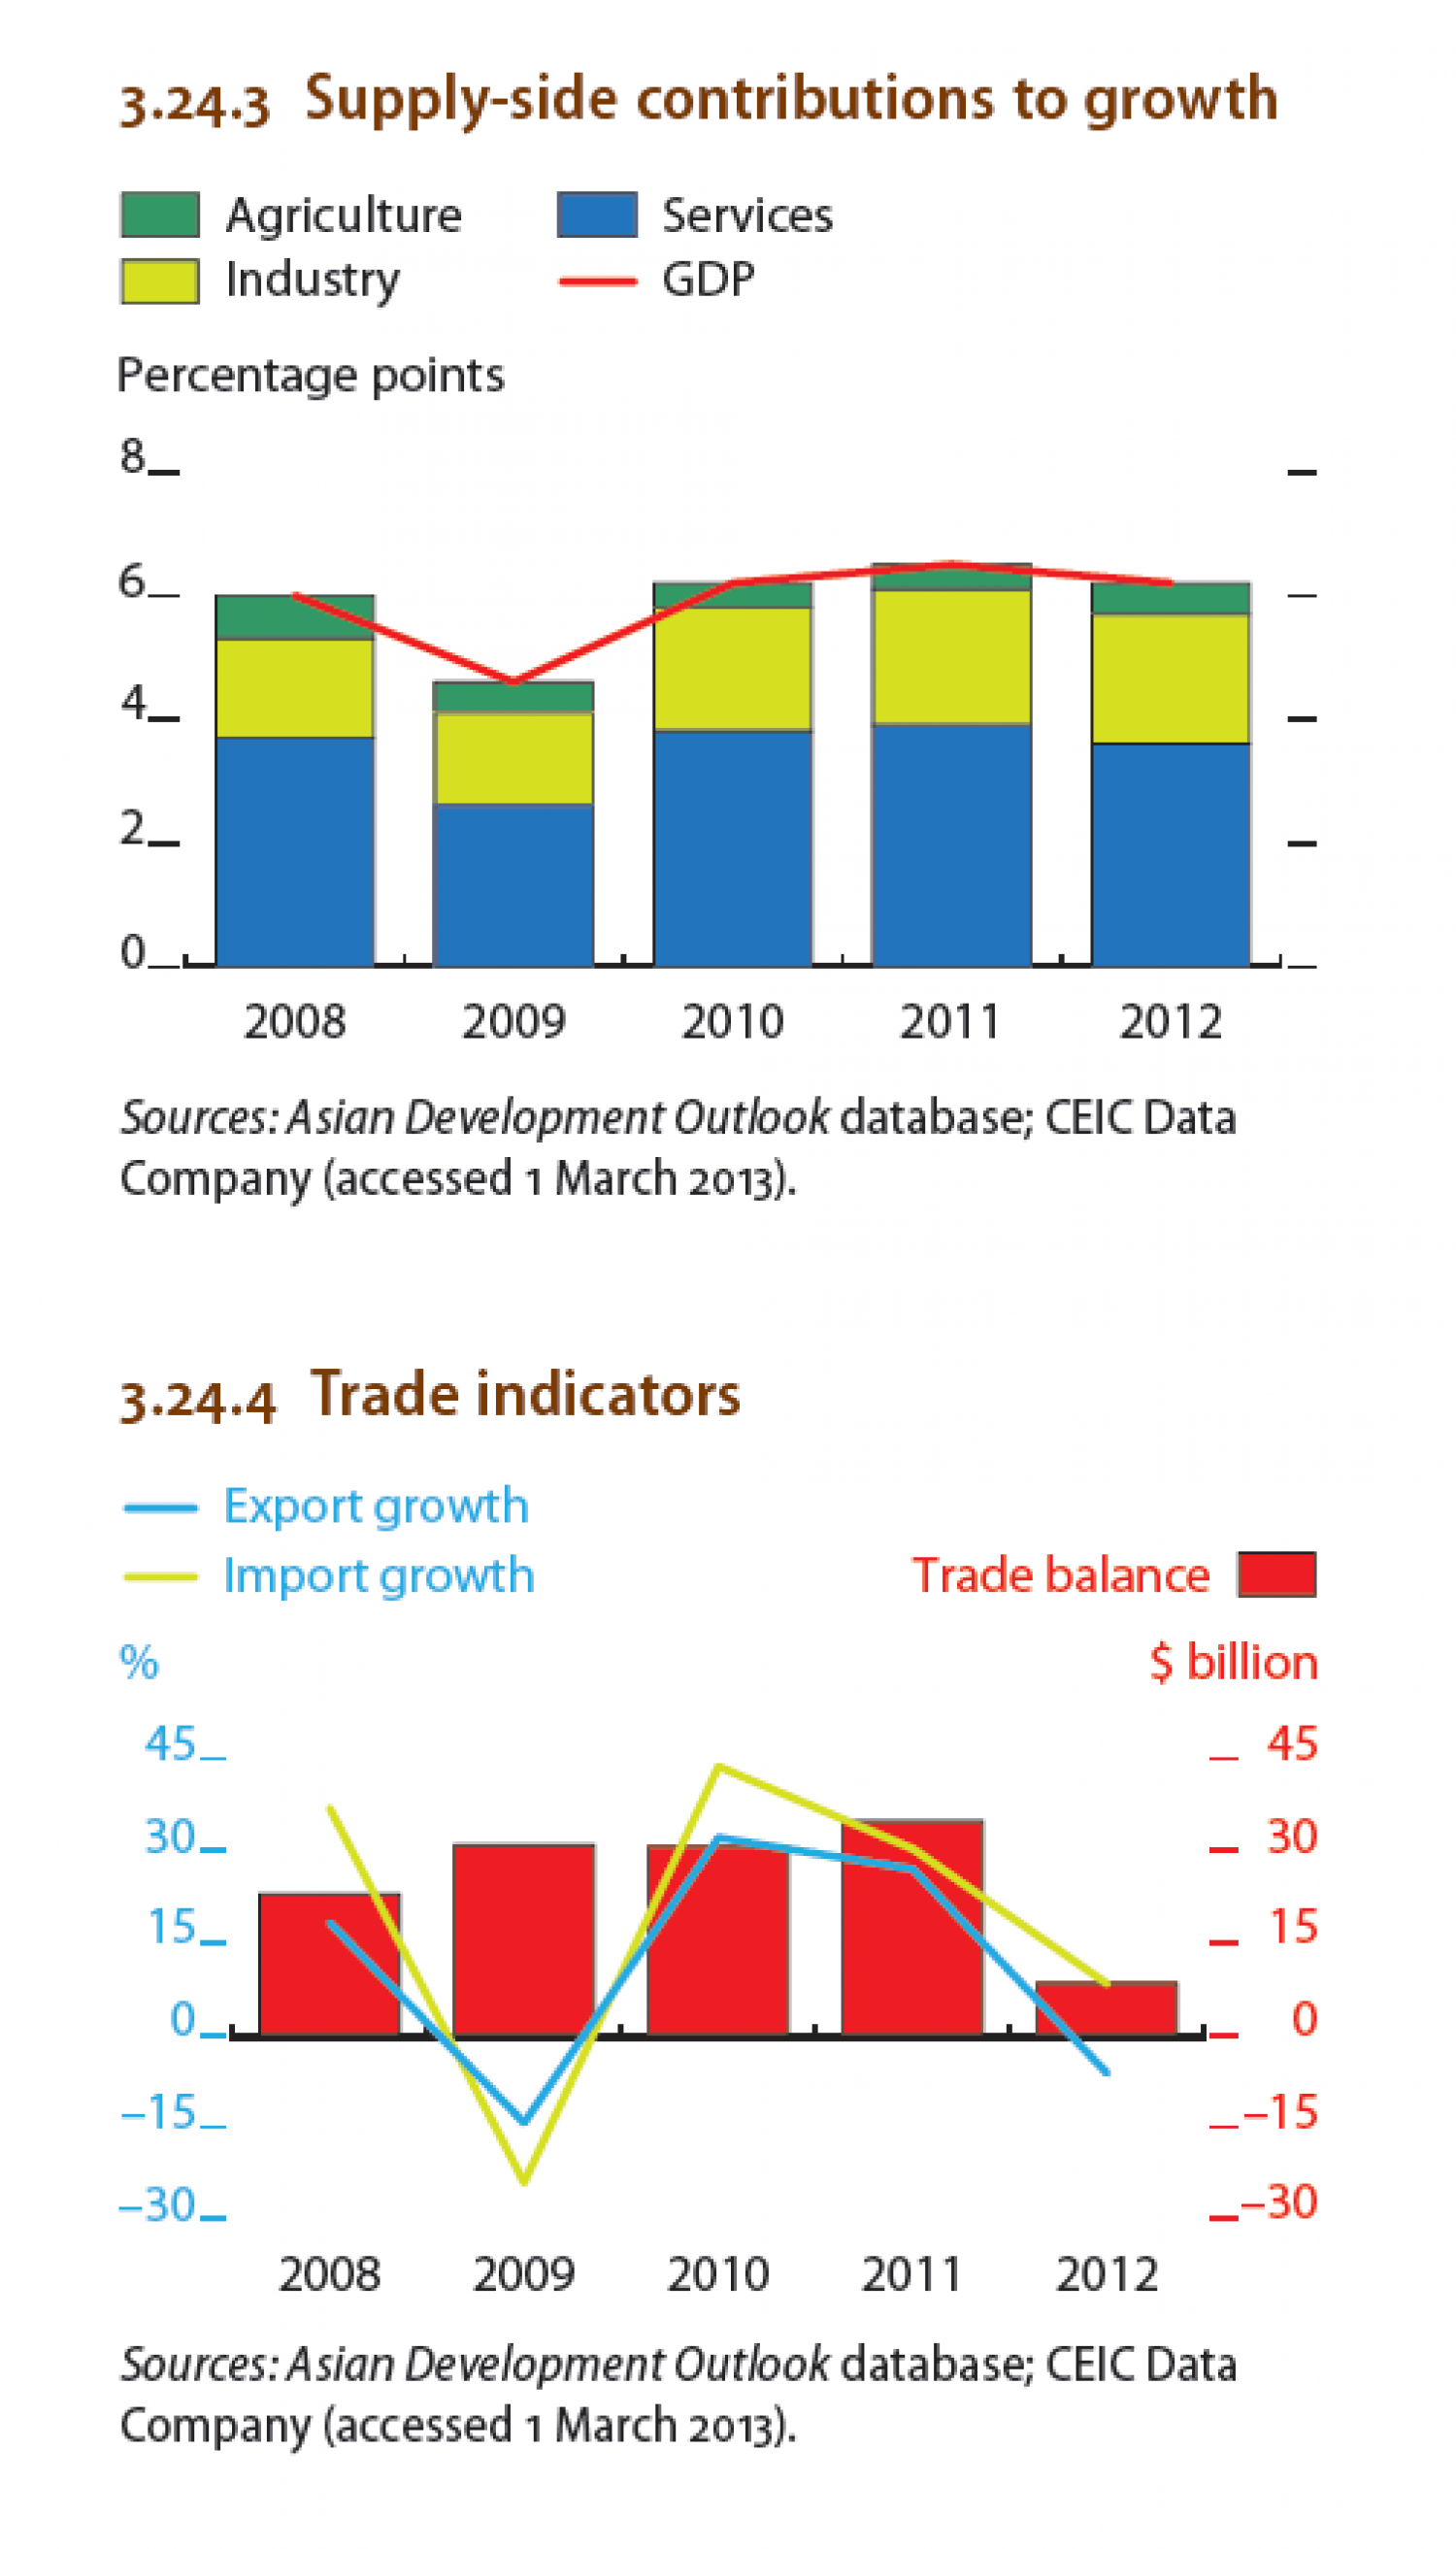 Indonesia : Supply-side contributions to growth, Trade indicators Infographic